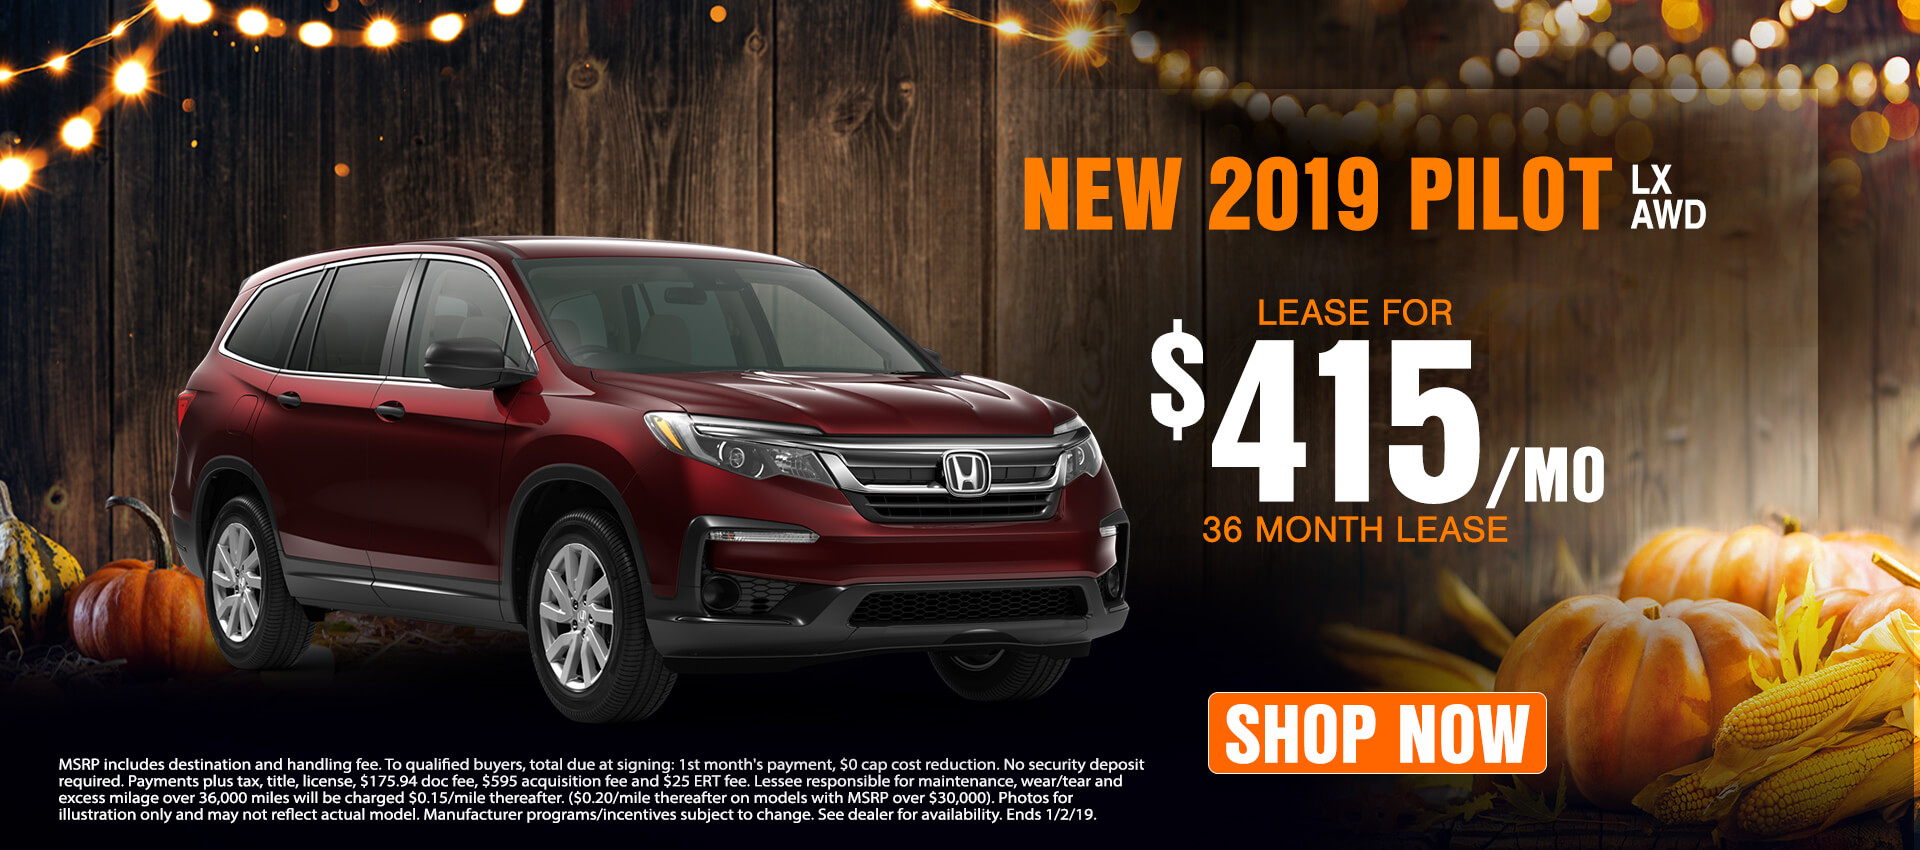 2019 Honda Pilot - Lease for $415